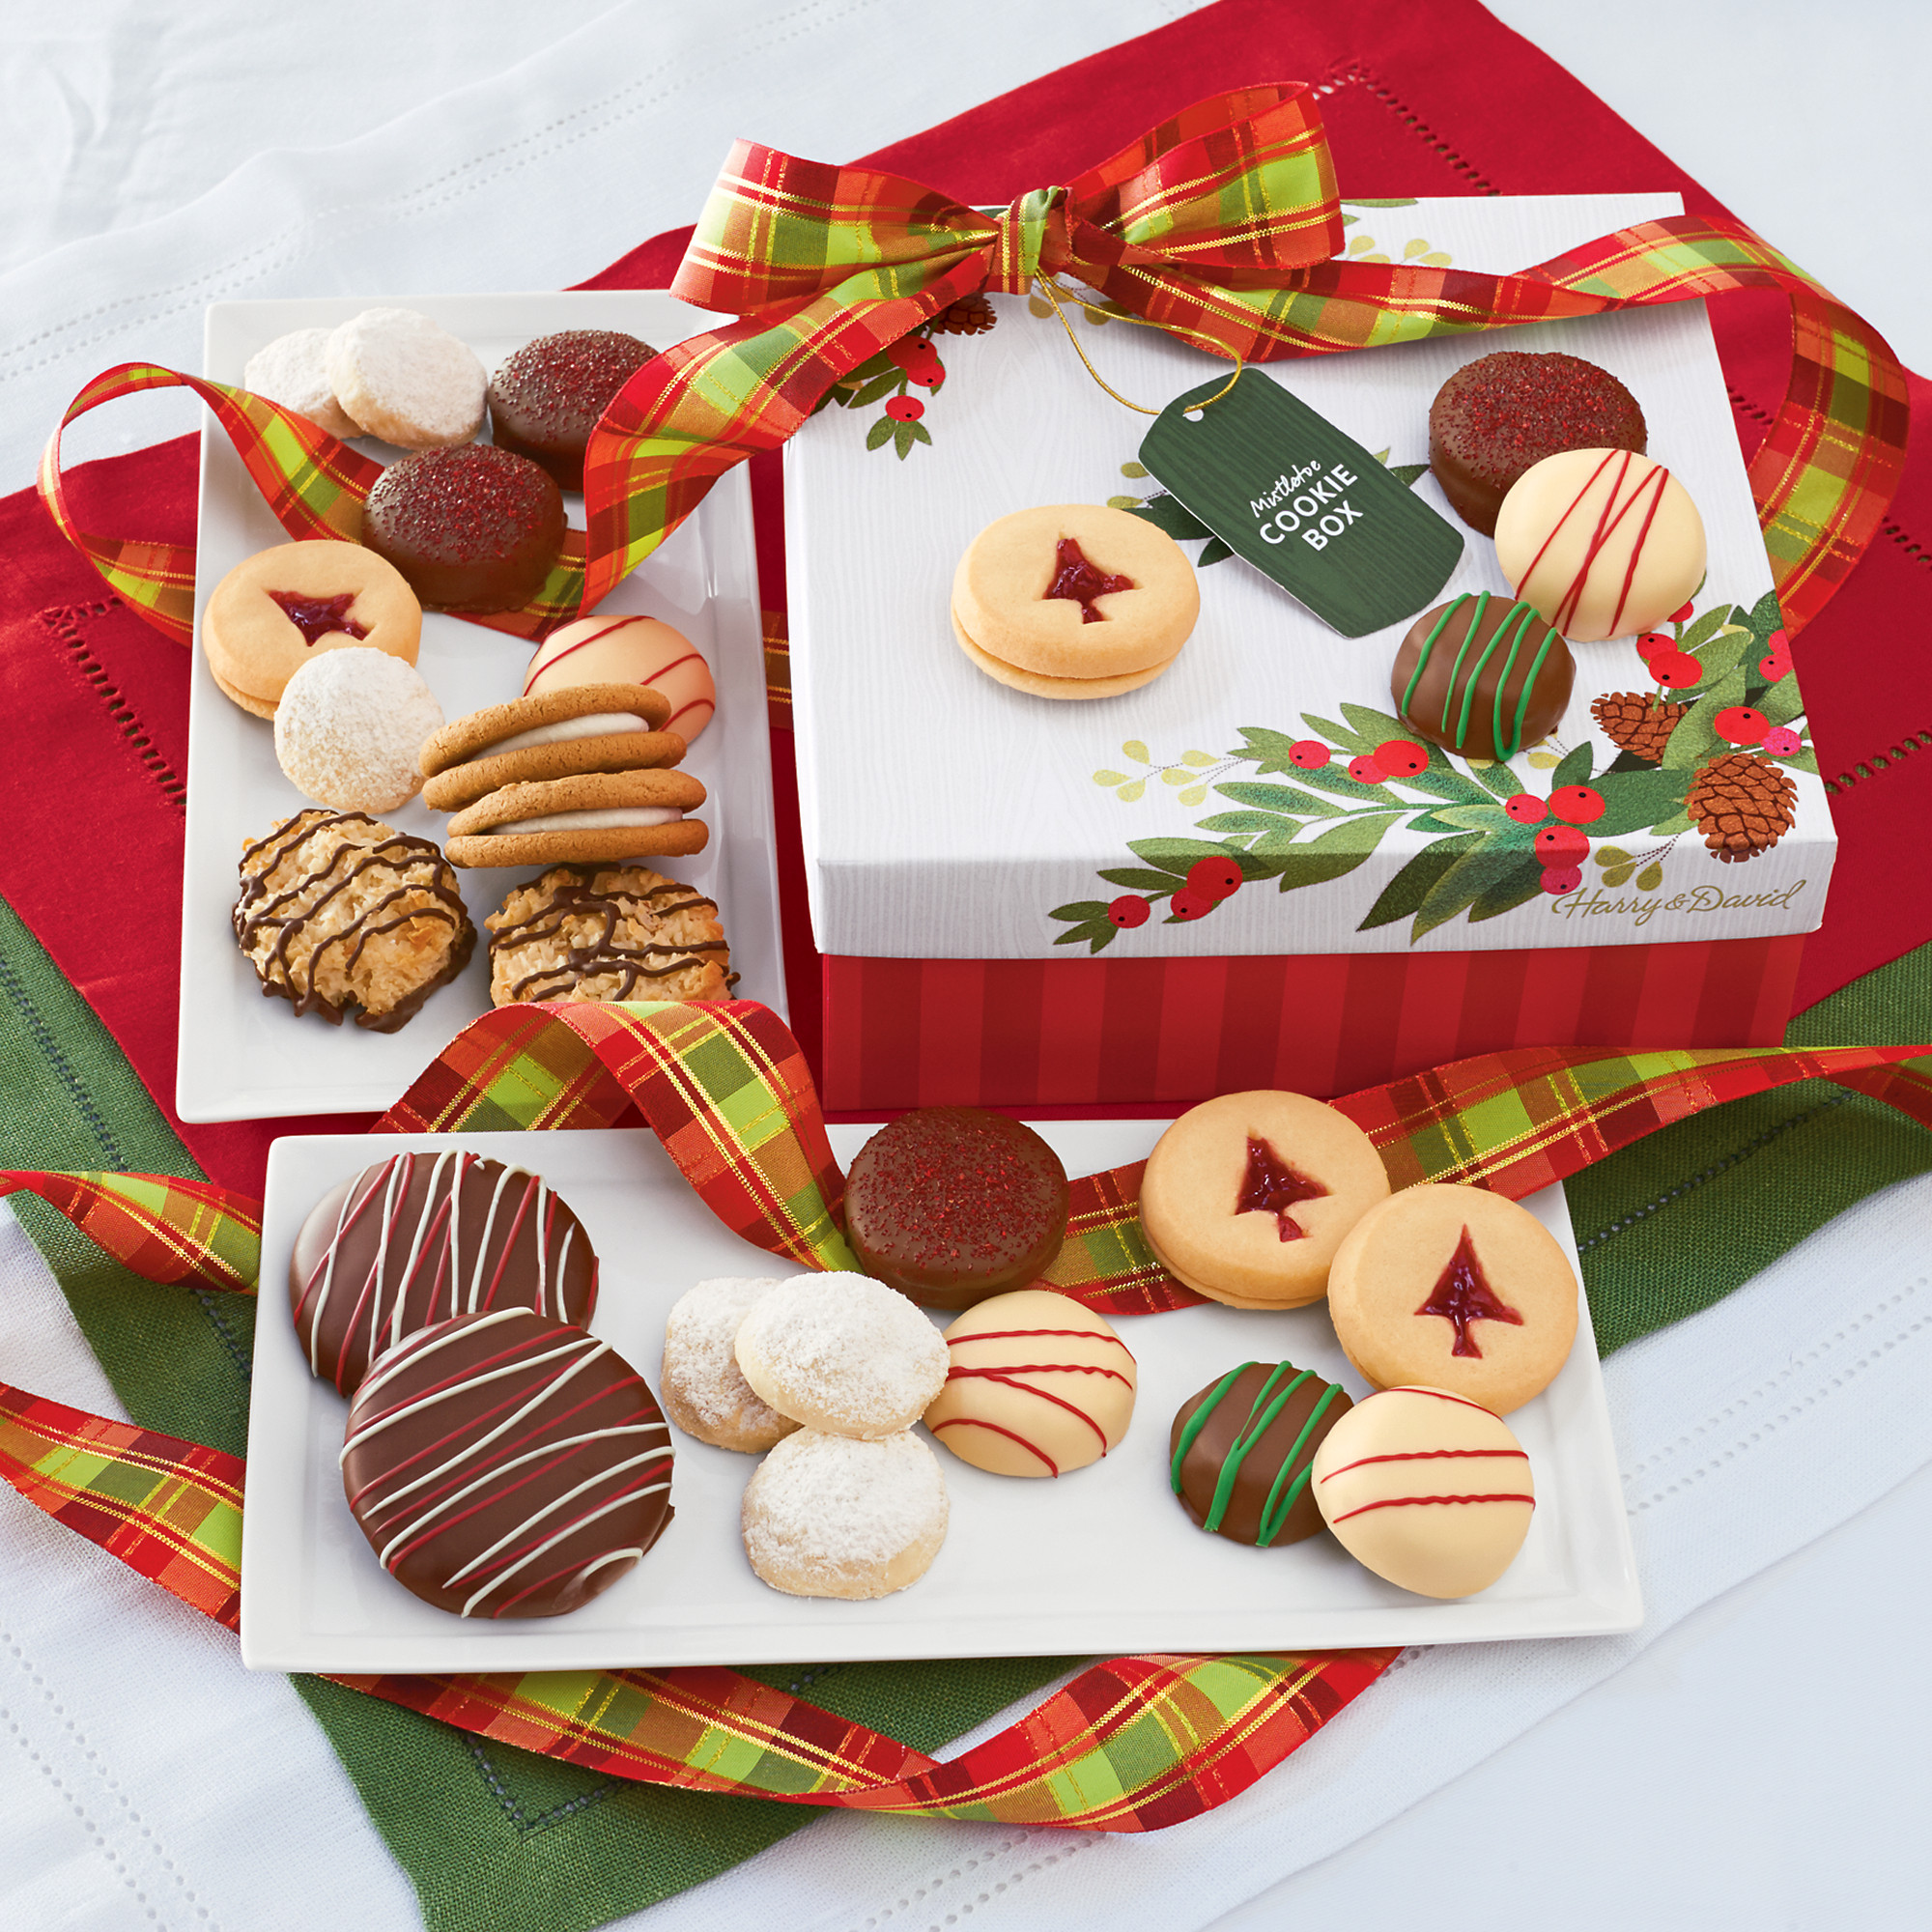 Cookies For Christmas Gifts  Mistletoe Christmas Cookie Gift